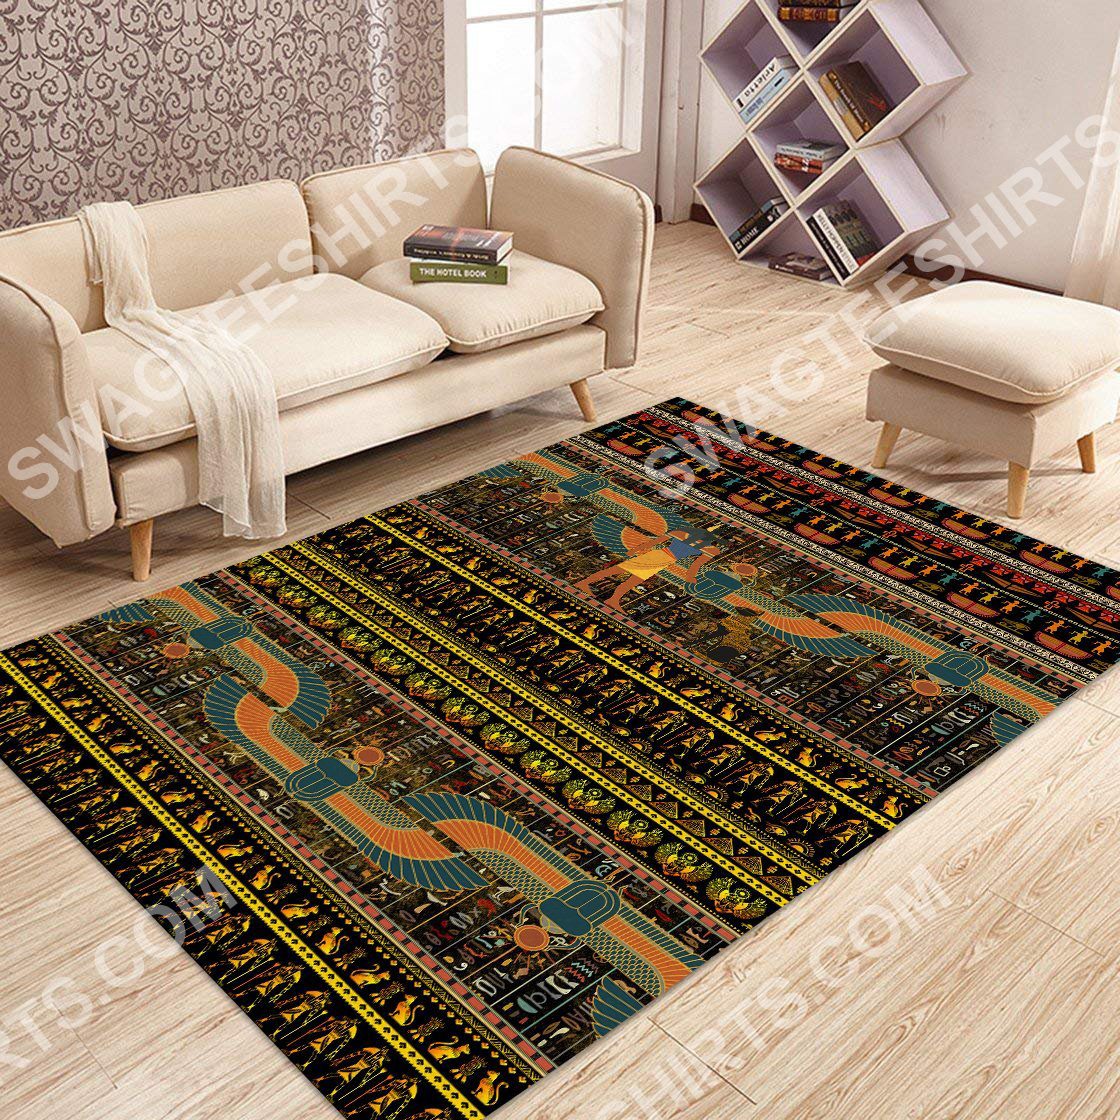 ancient egyptian culture all over printed rug 3(1)